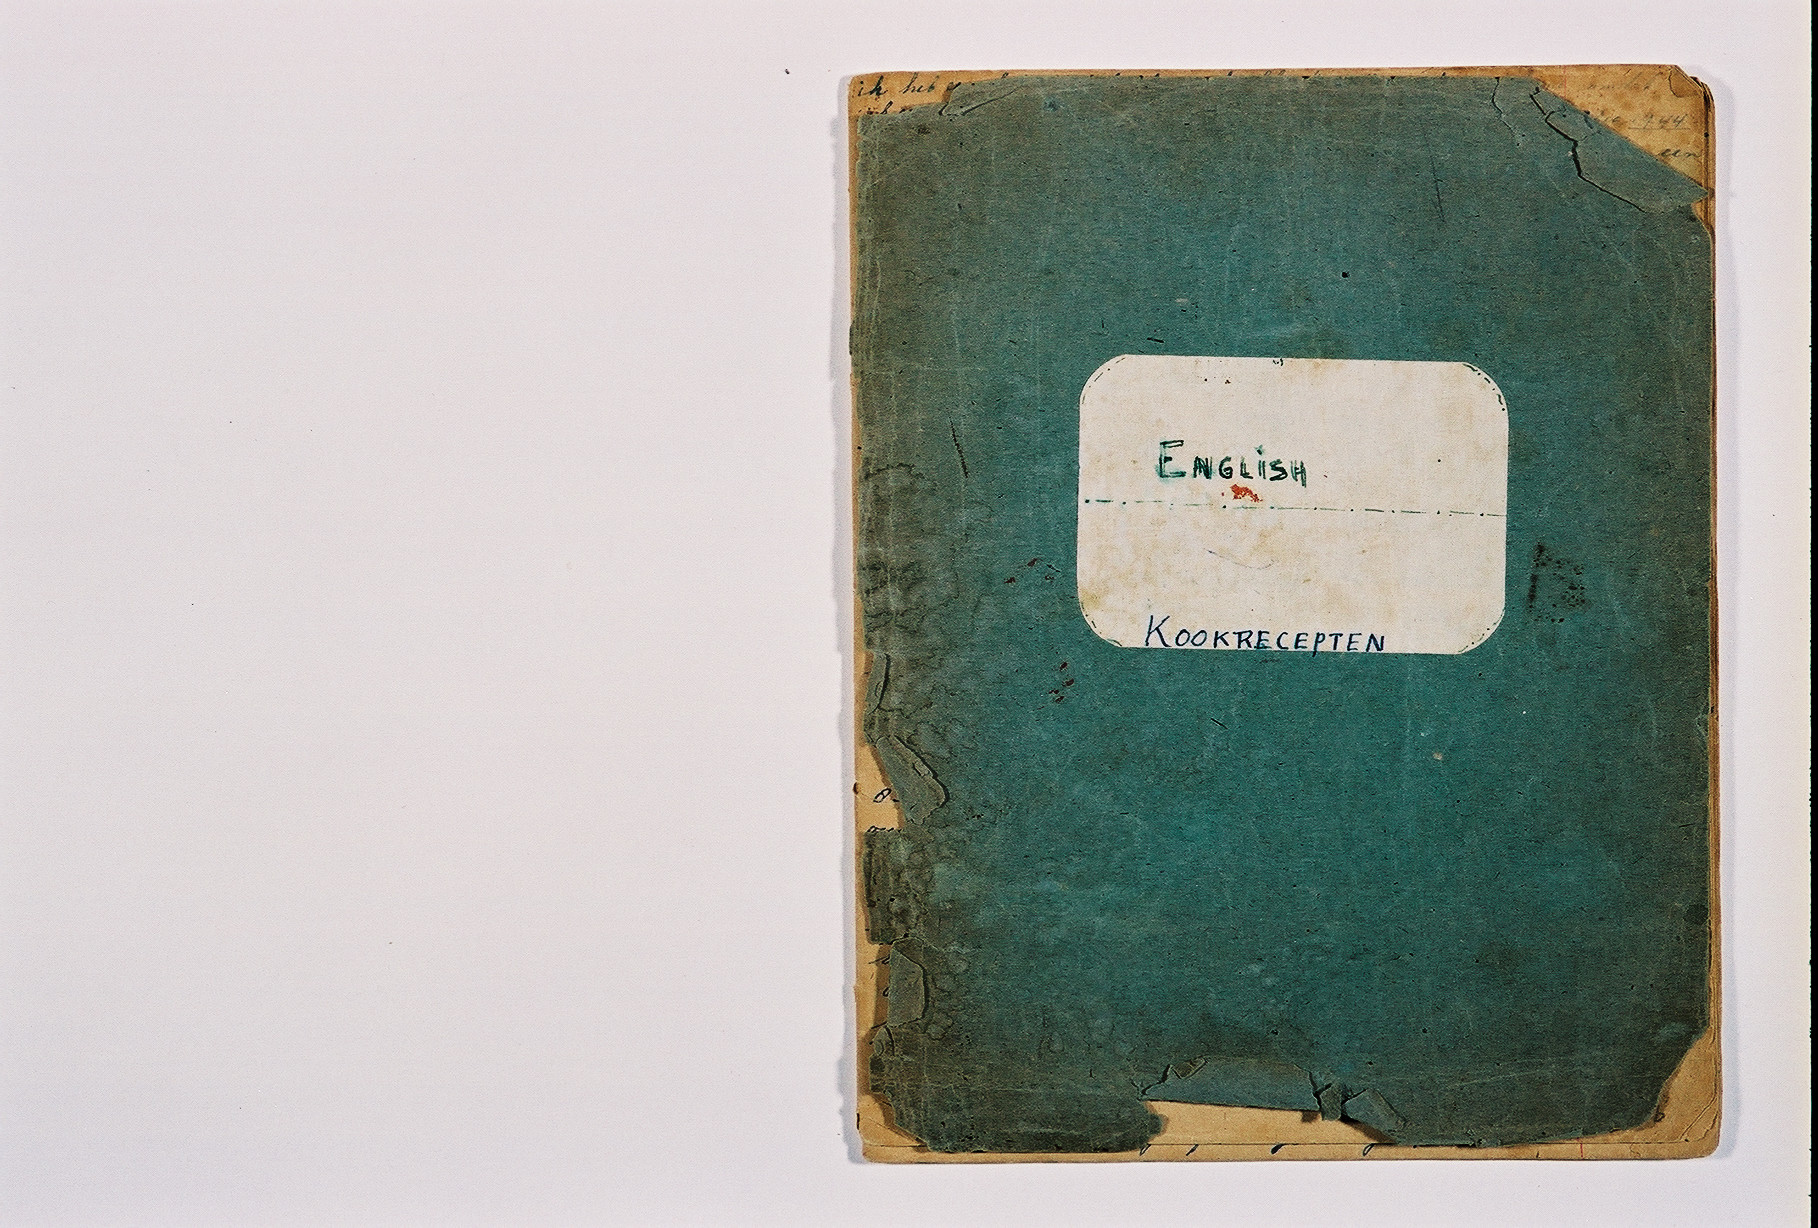 The cover of a diary written by Susie Grunbaum Schwarz while in hiding.  She disguised the diary in the form of a cookbook written in several languages.